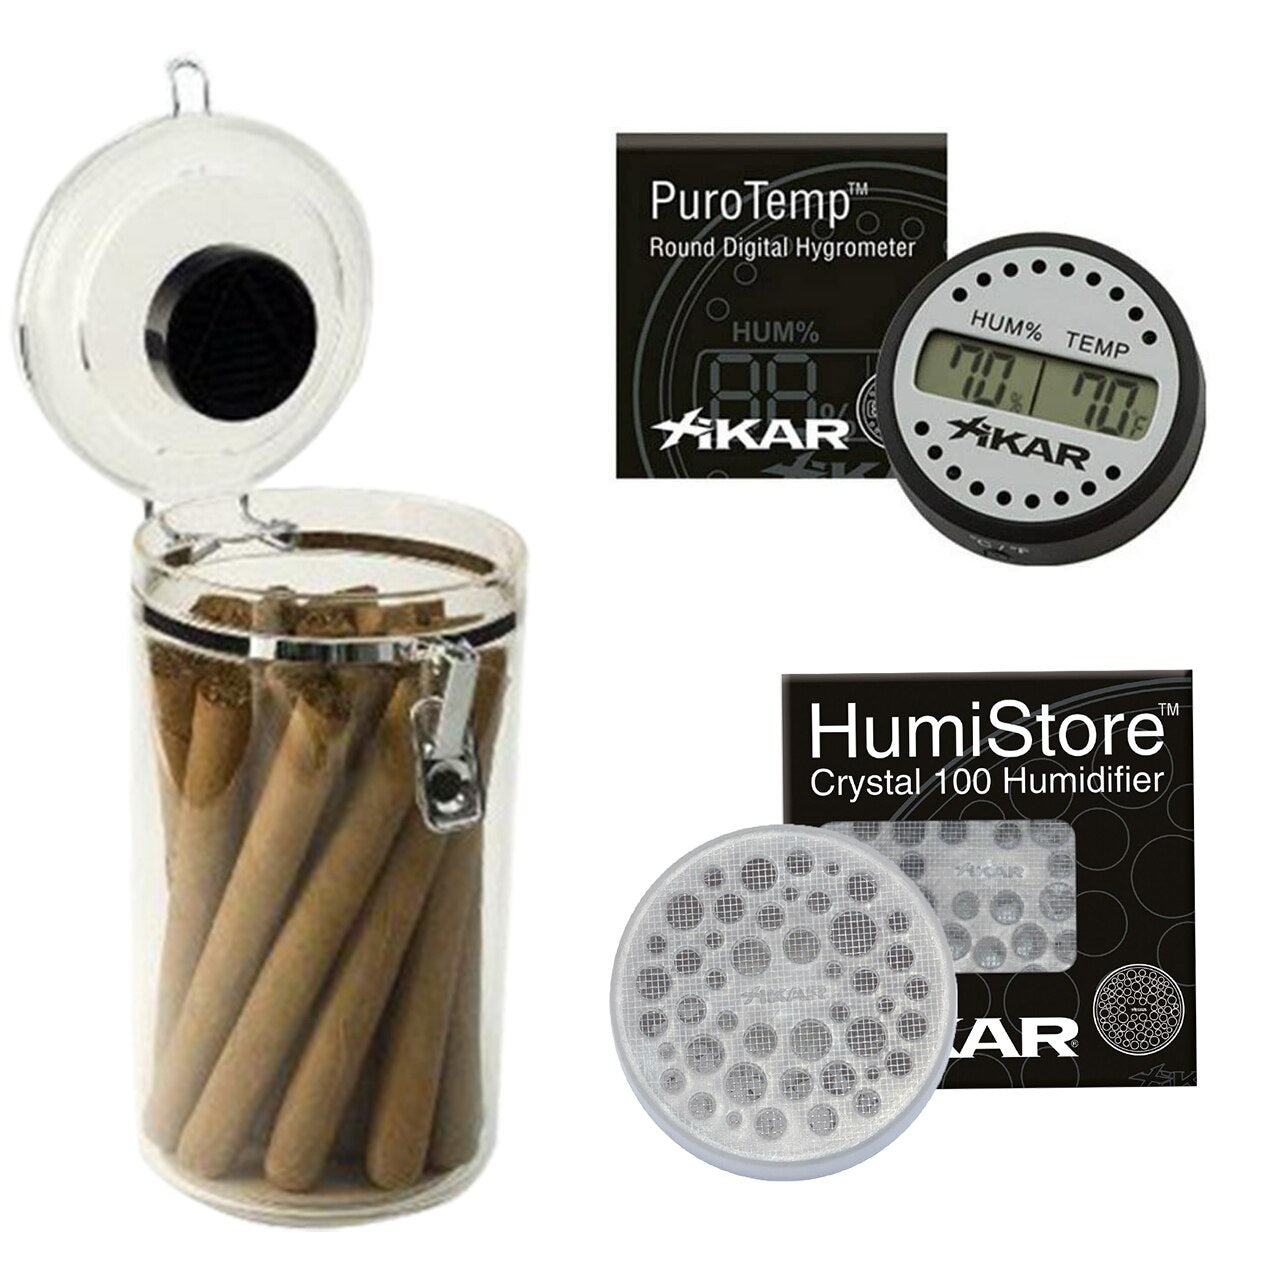 CBC Acrylic Cigar Jar Humidor Humidifier plus XIKAR Humi Store and Puro Temp XIKAR